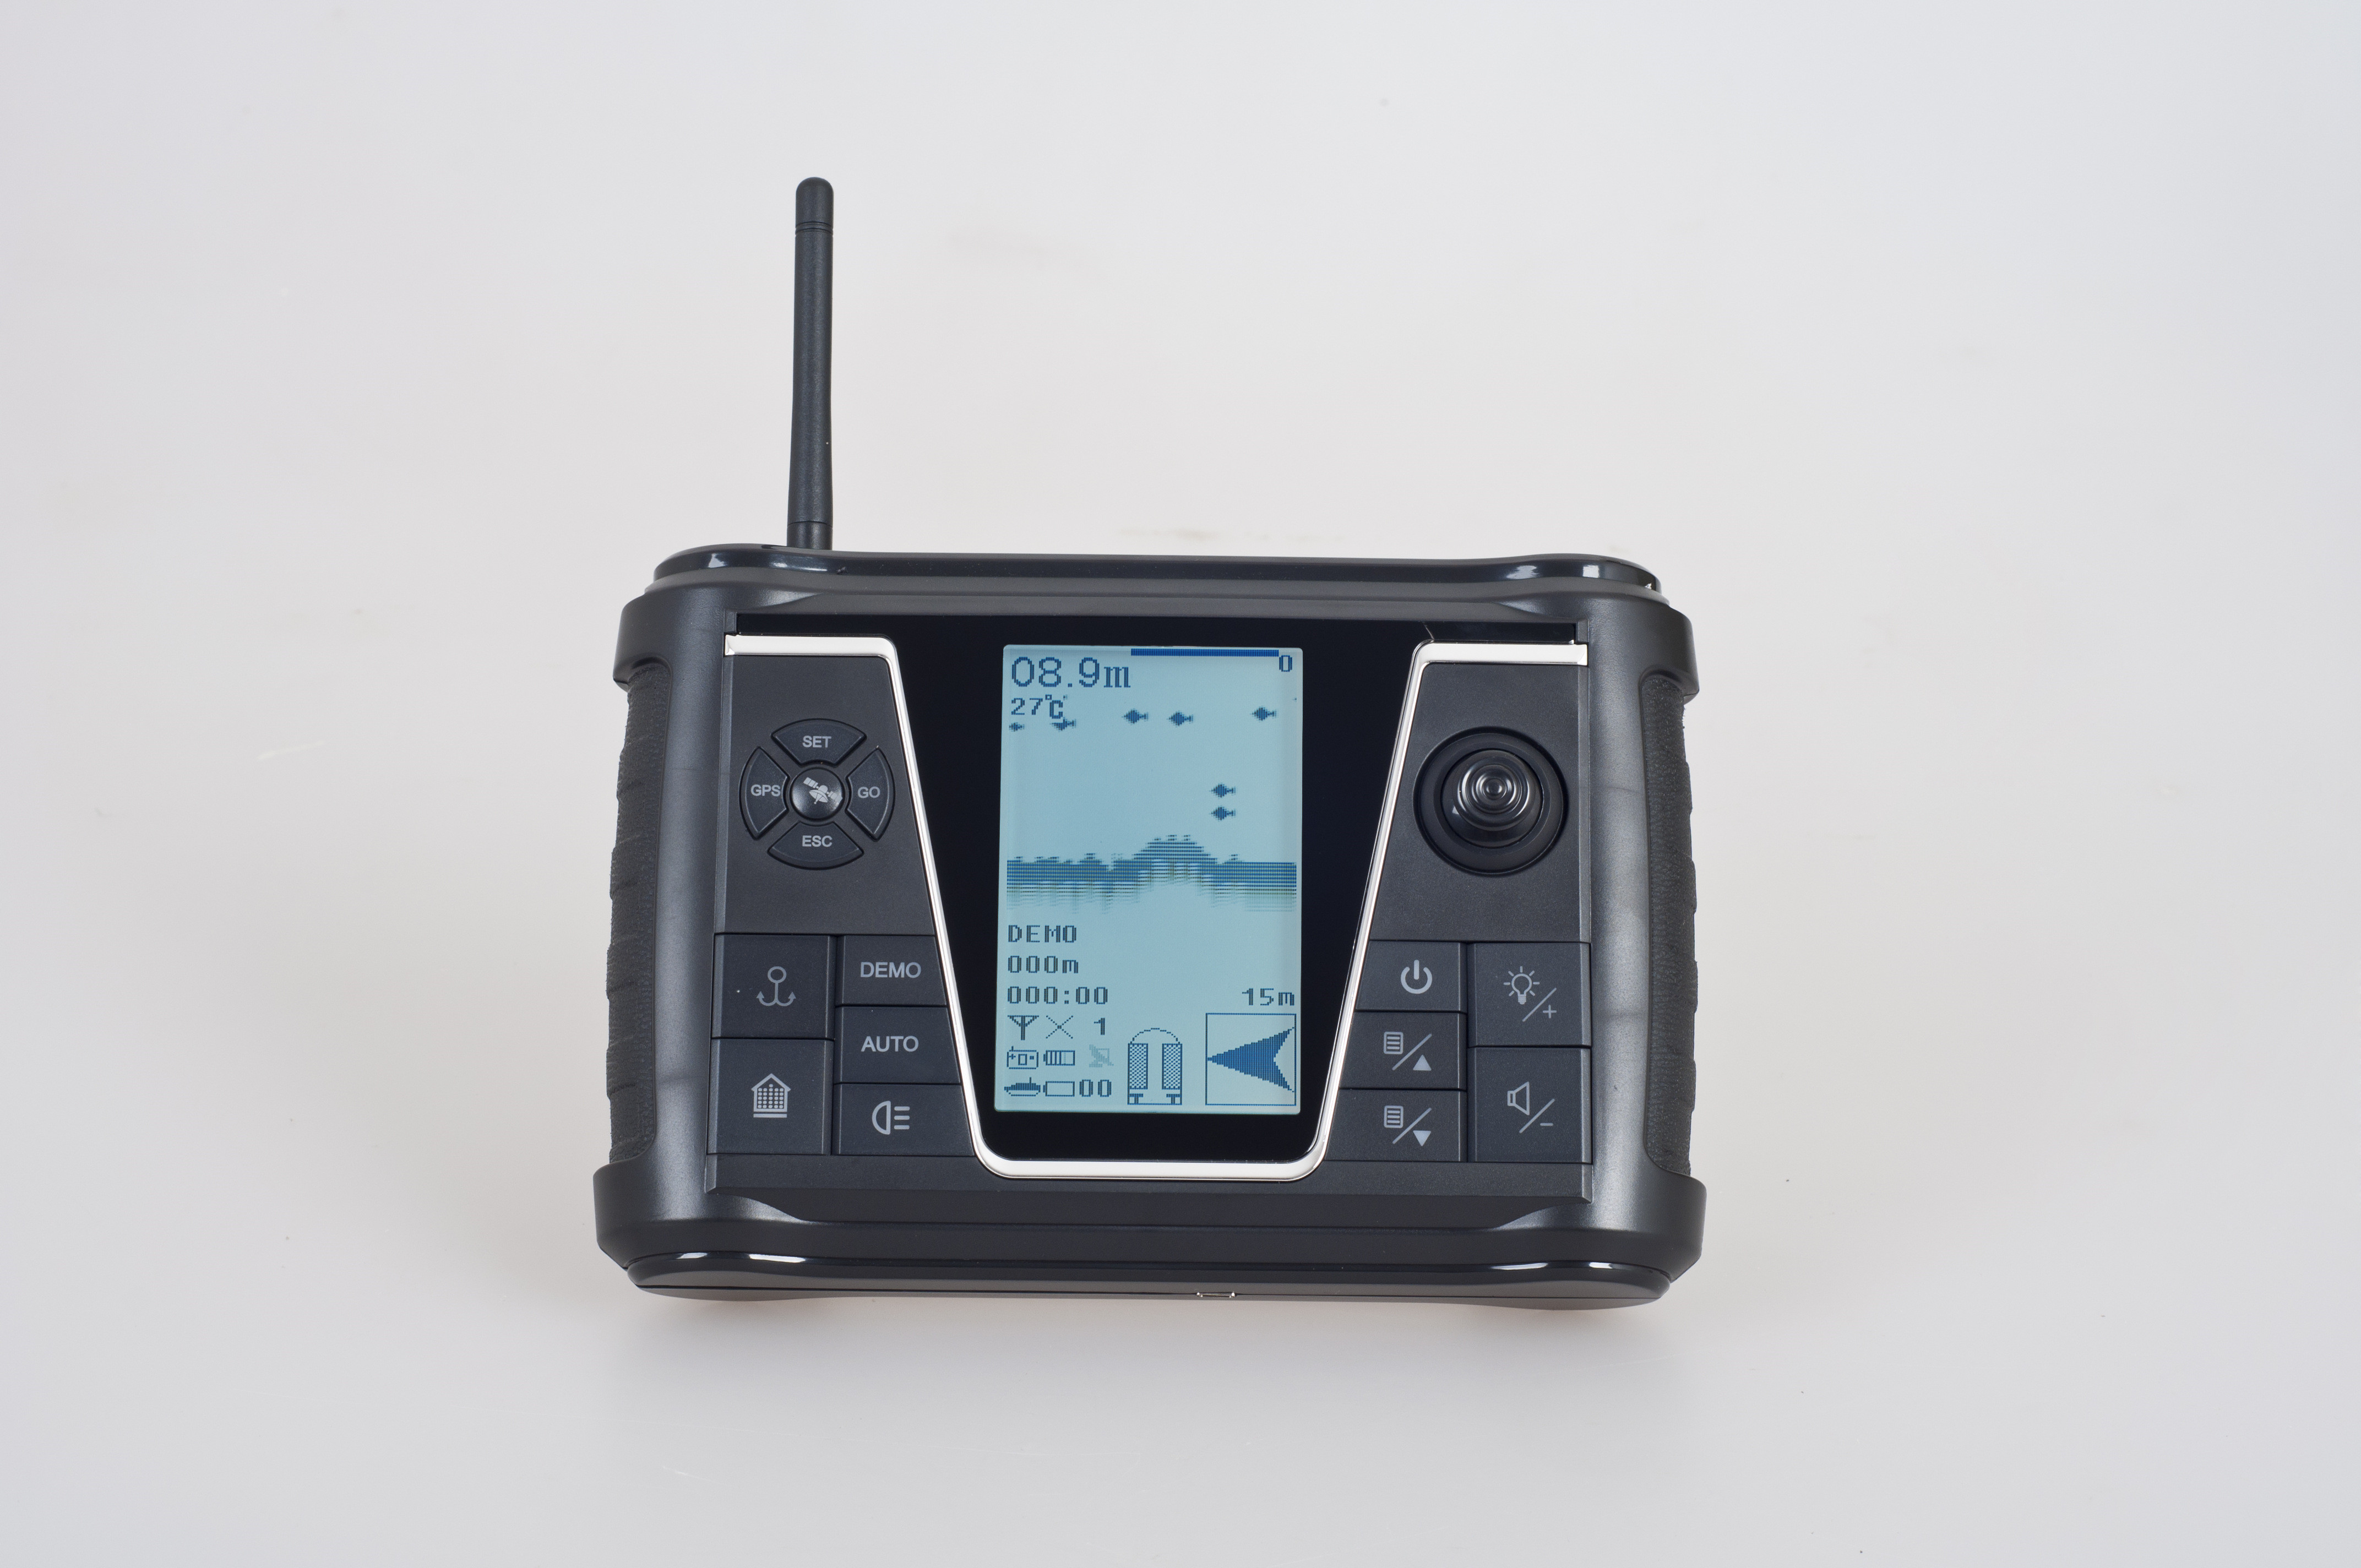 Bait Boat Parts For Remote Control Handset With High Resolution LCD, Full Digital Duplex